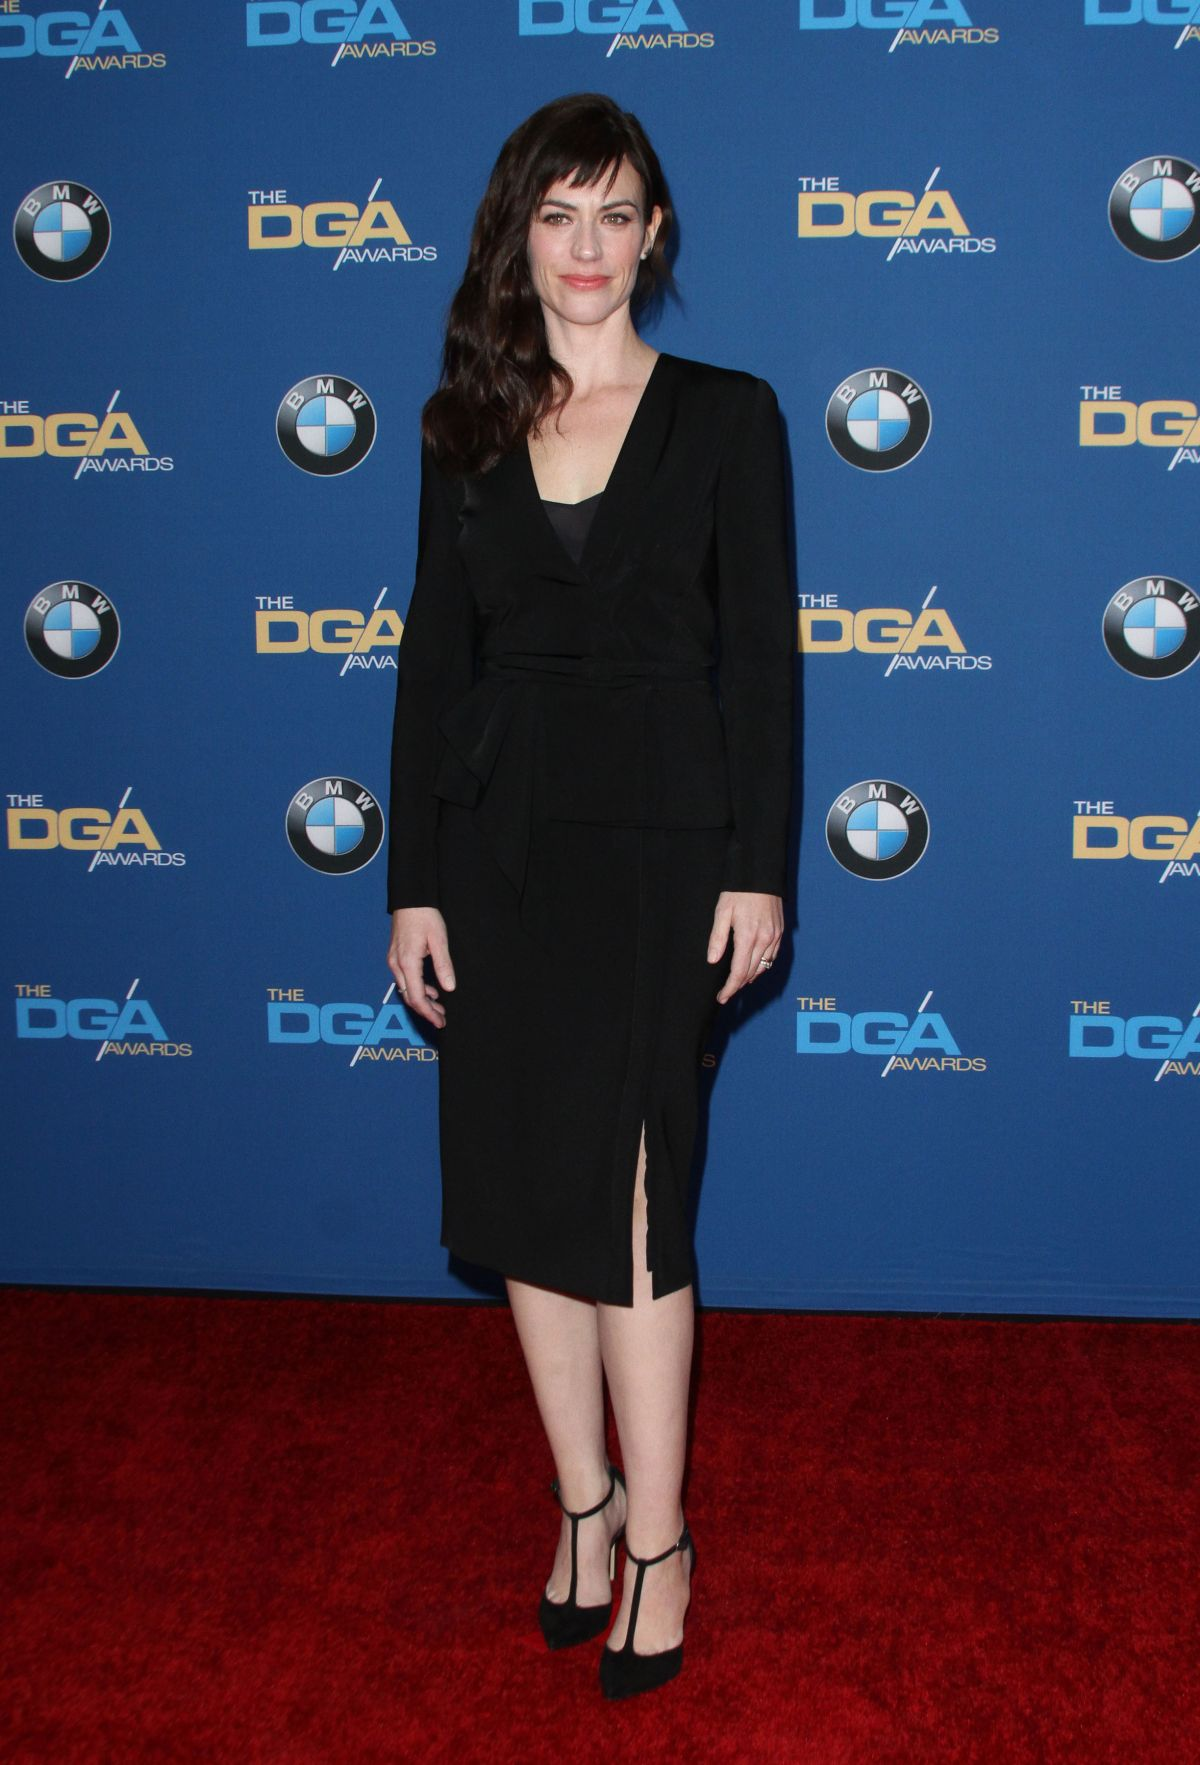 MAGGIE SIFF at 68th Annual Directors Guild of America Awards in Los Angeles 02/06/2016